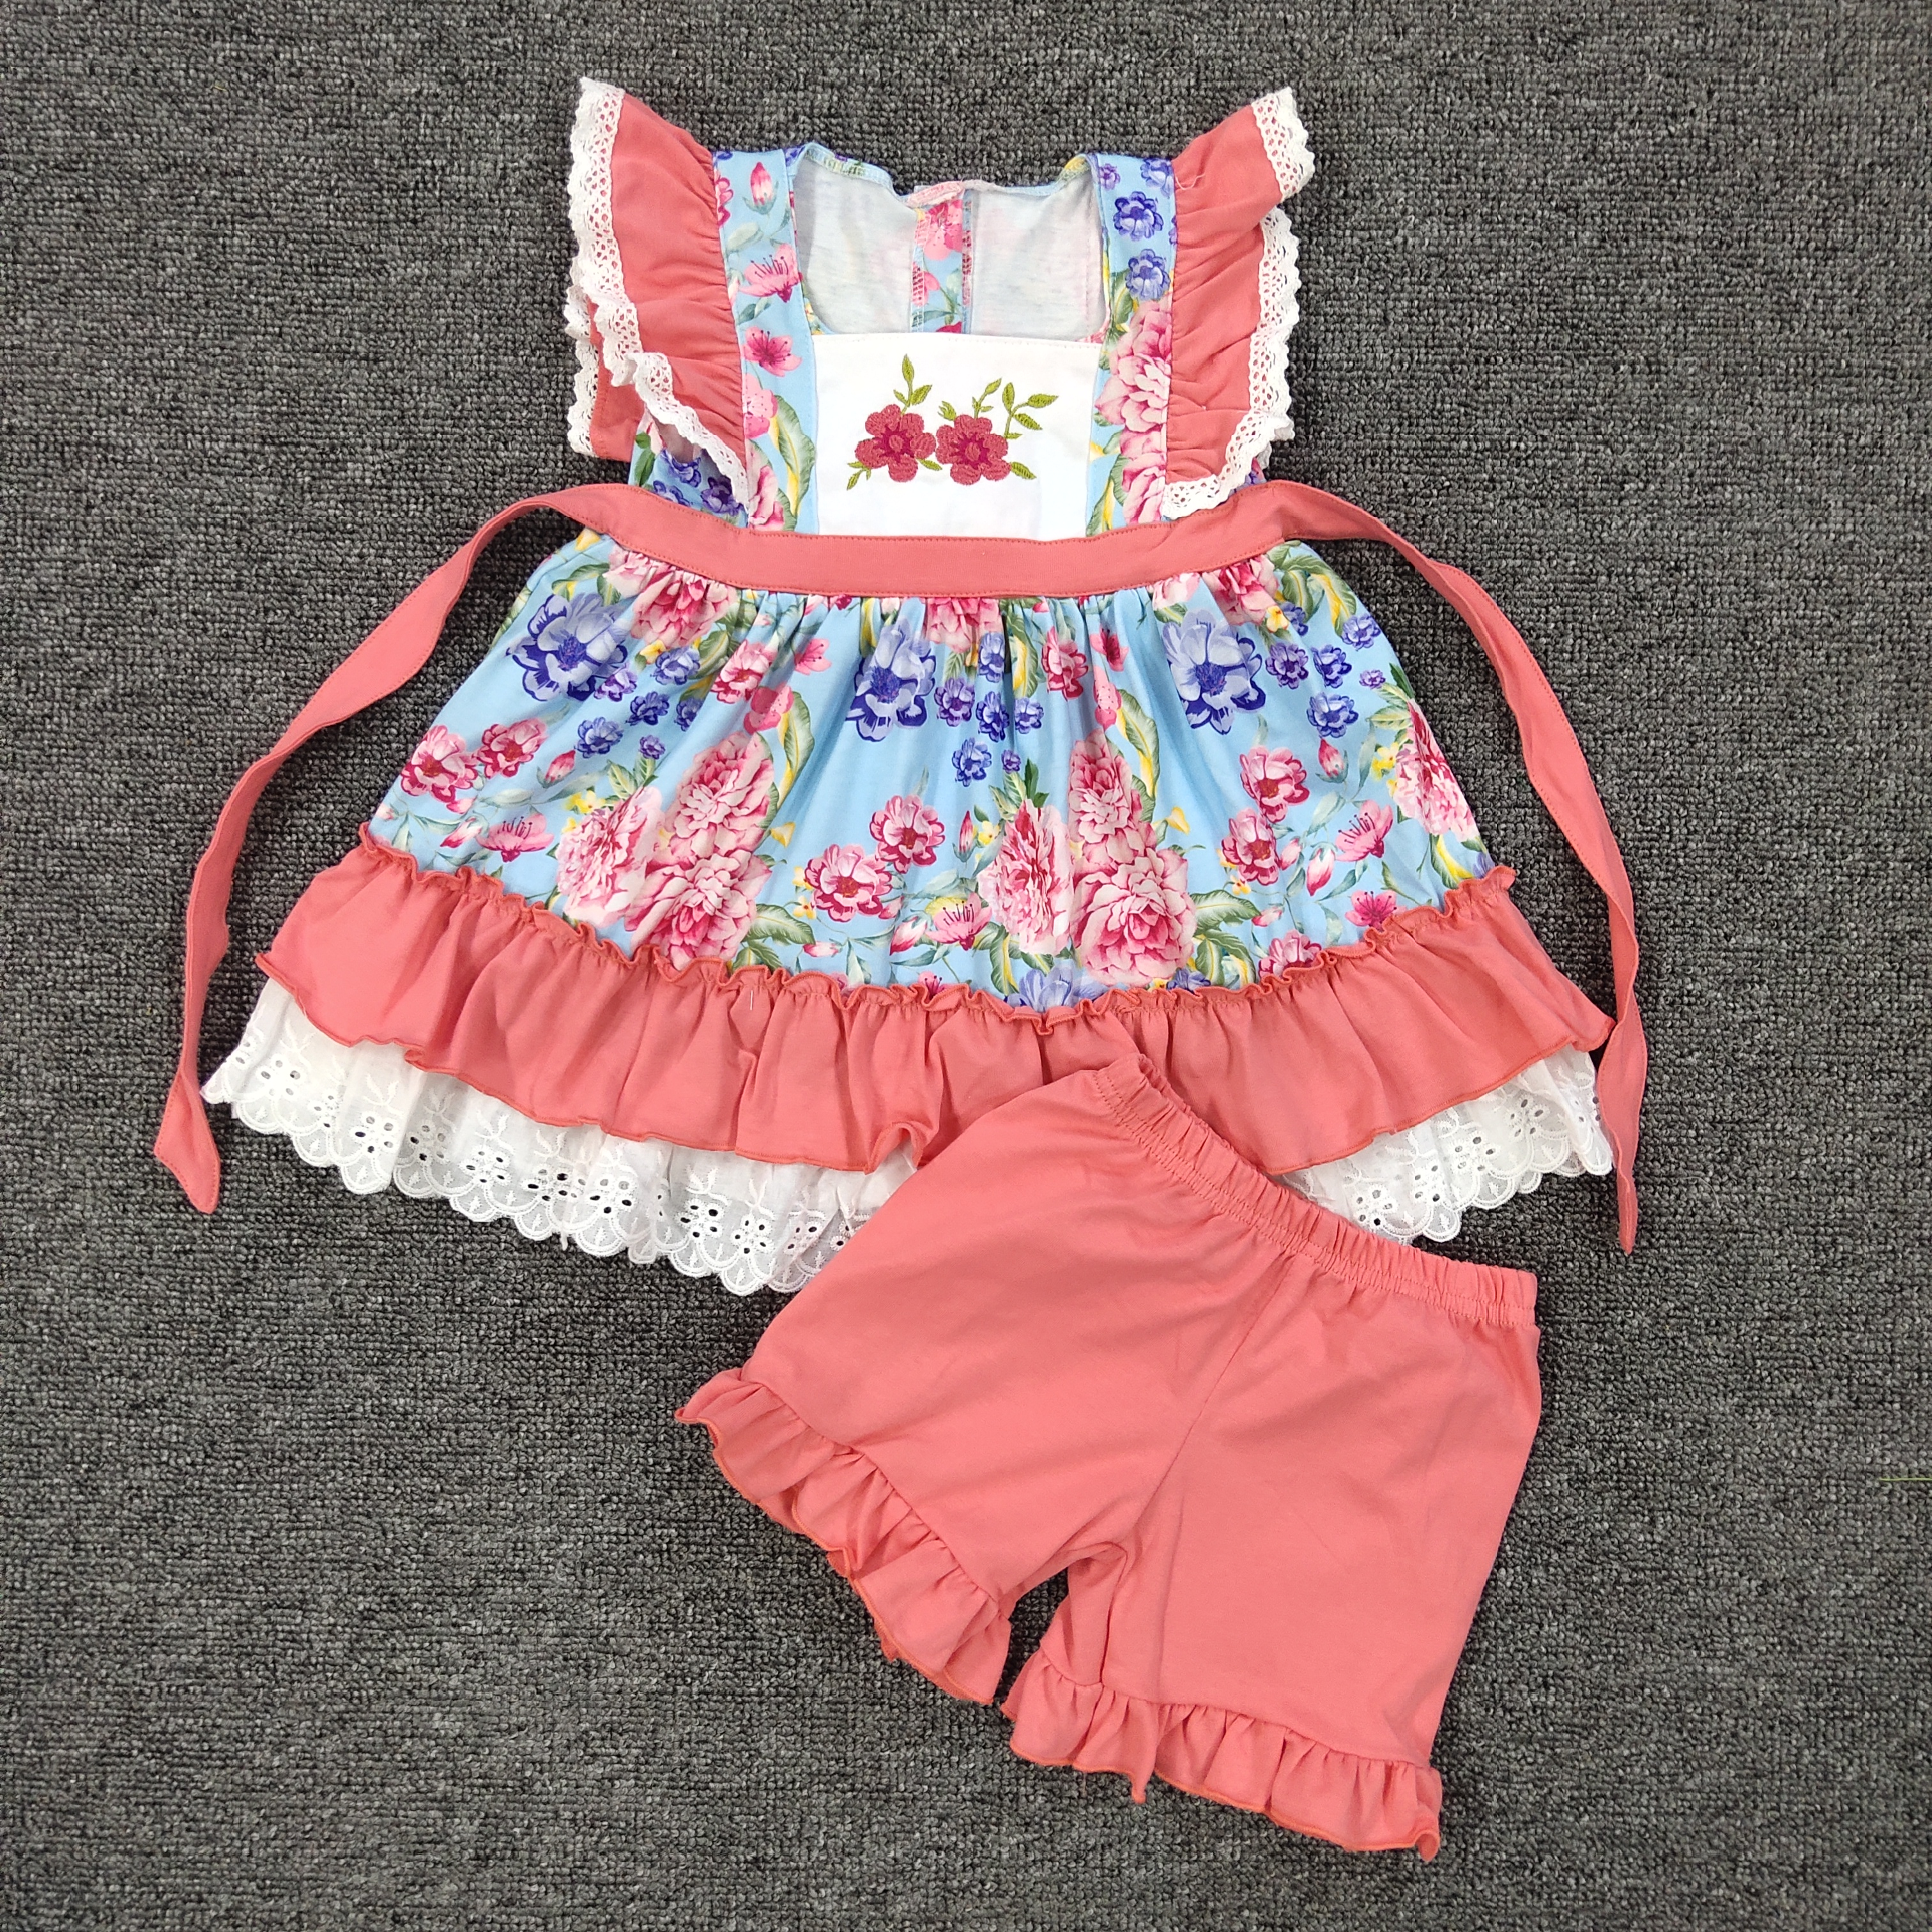 Girl Set Toddler Girls Clothing Summer Boutique Shorts Baby Remake Outfits Set